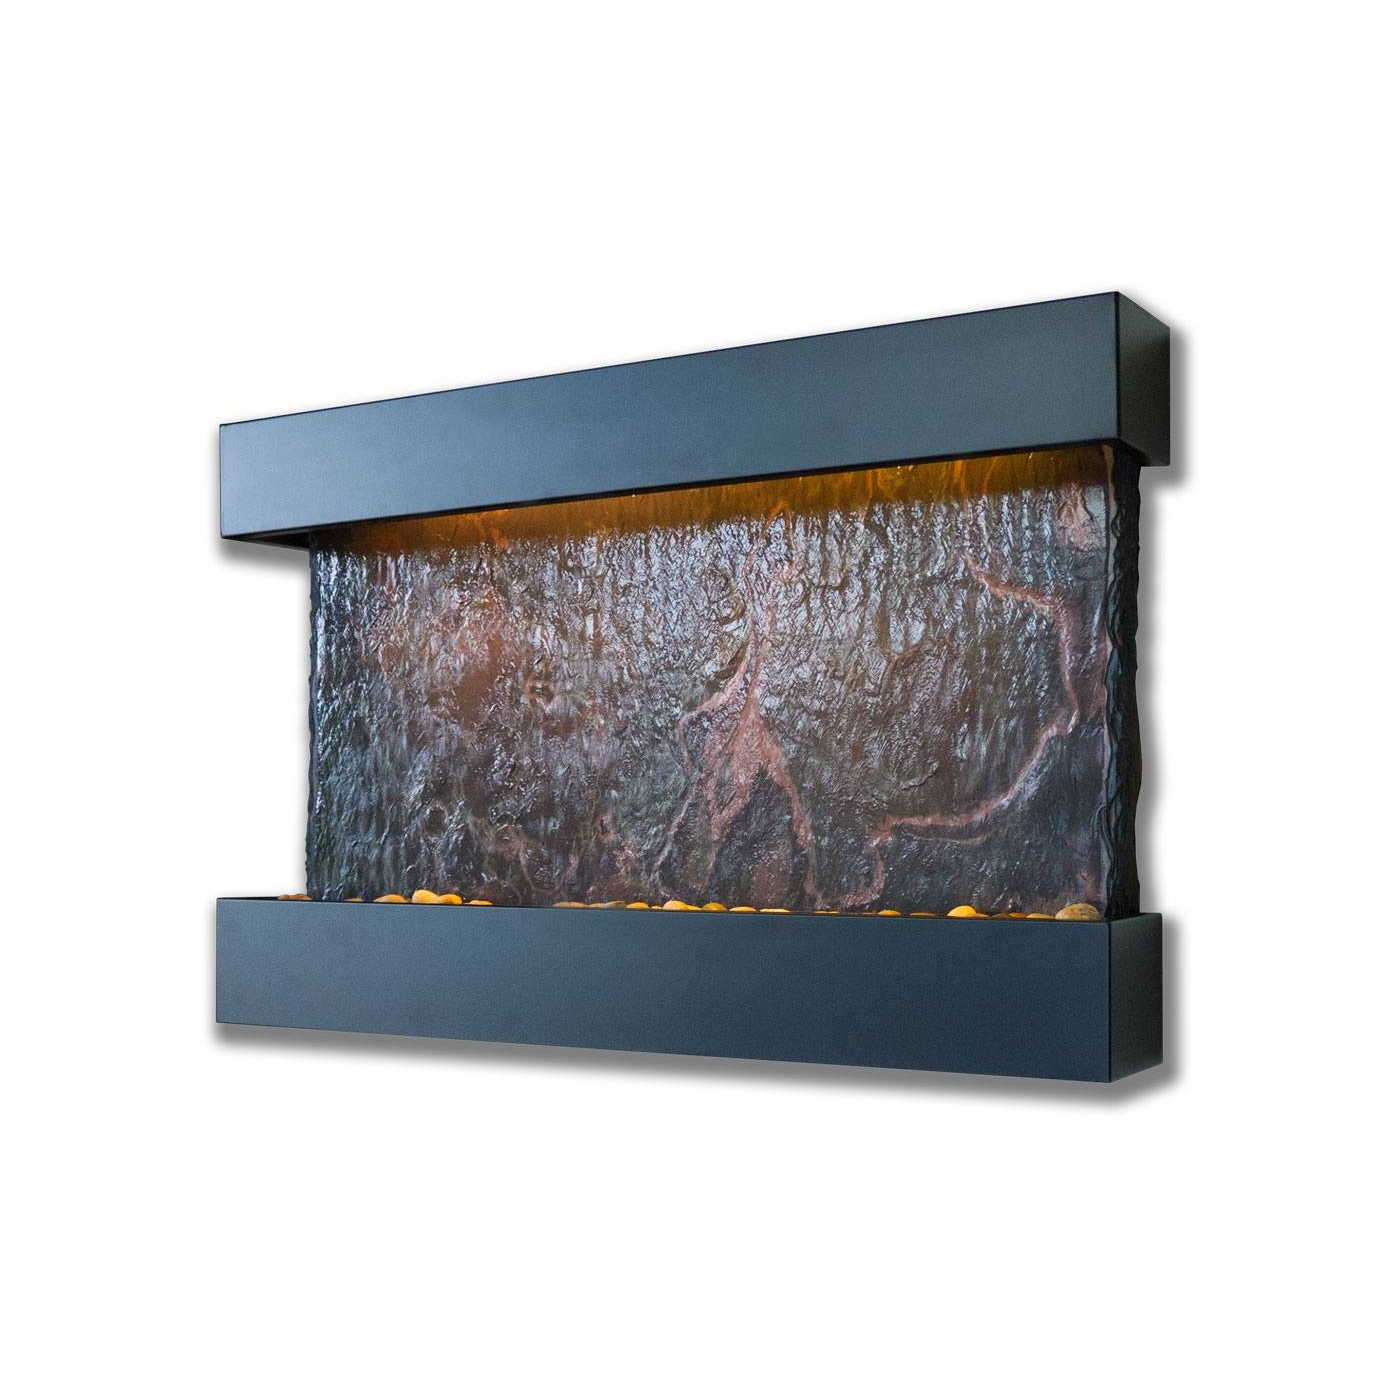 Medium Horizion wall mounted water fountain